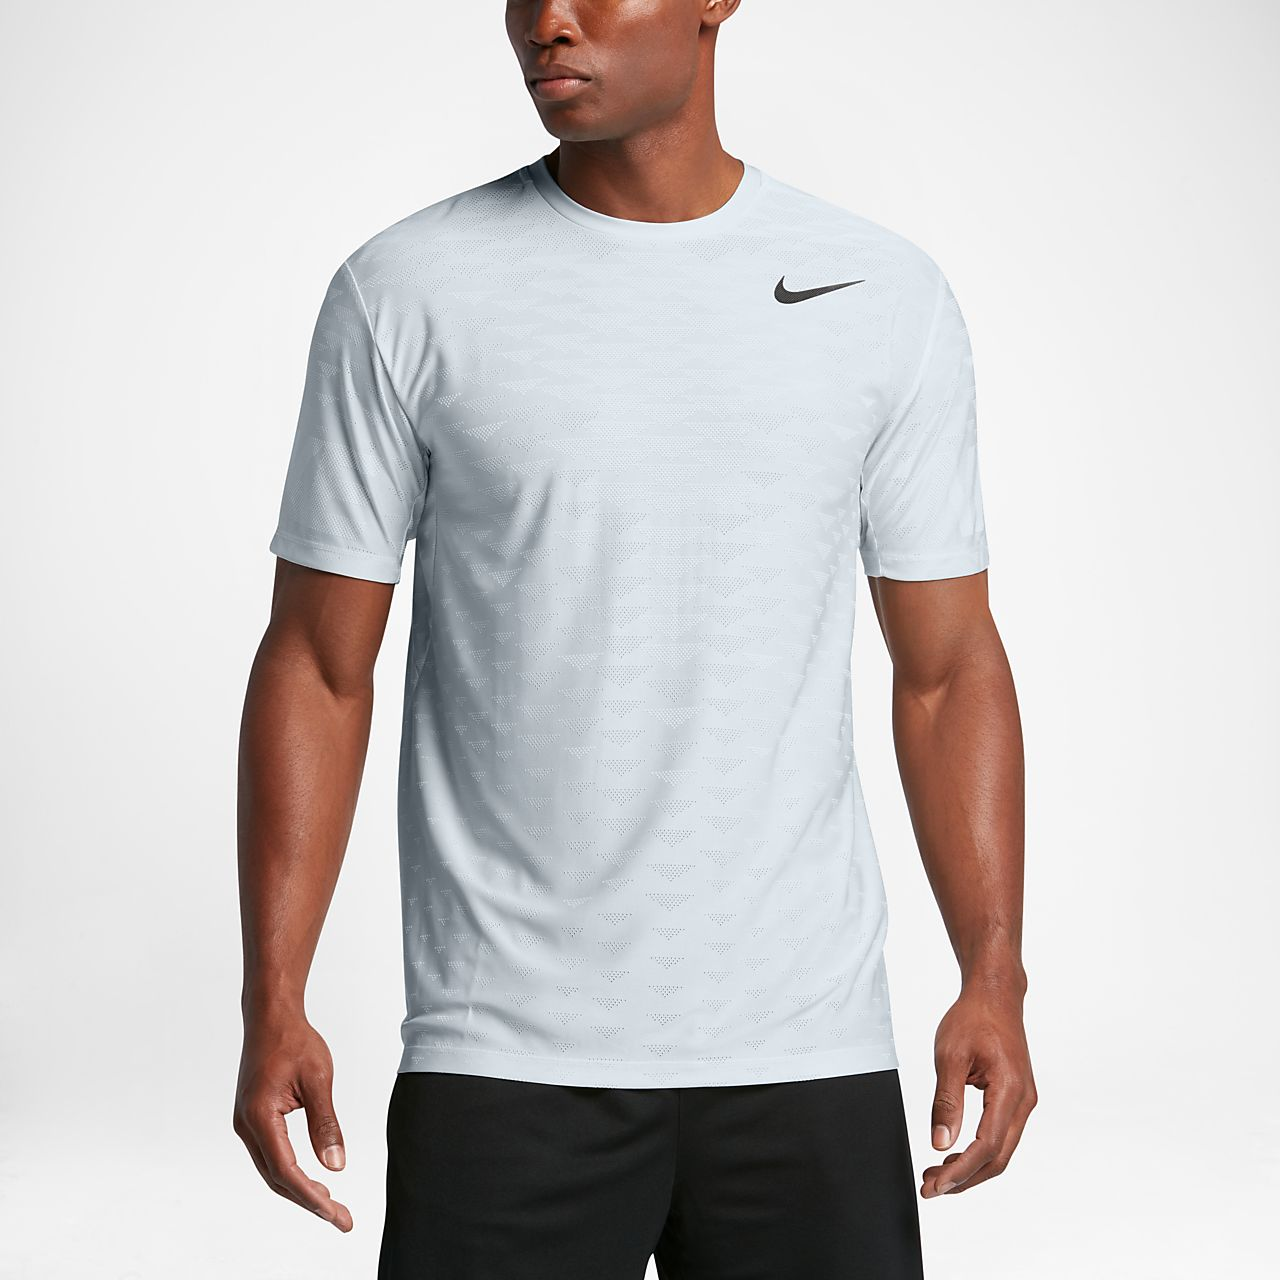 Nike Zonal Cooling Men's Short Sleeve Training Top Pure Platinum/White/Black